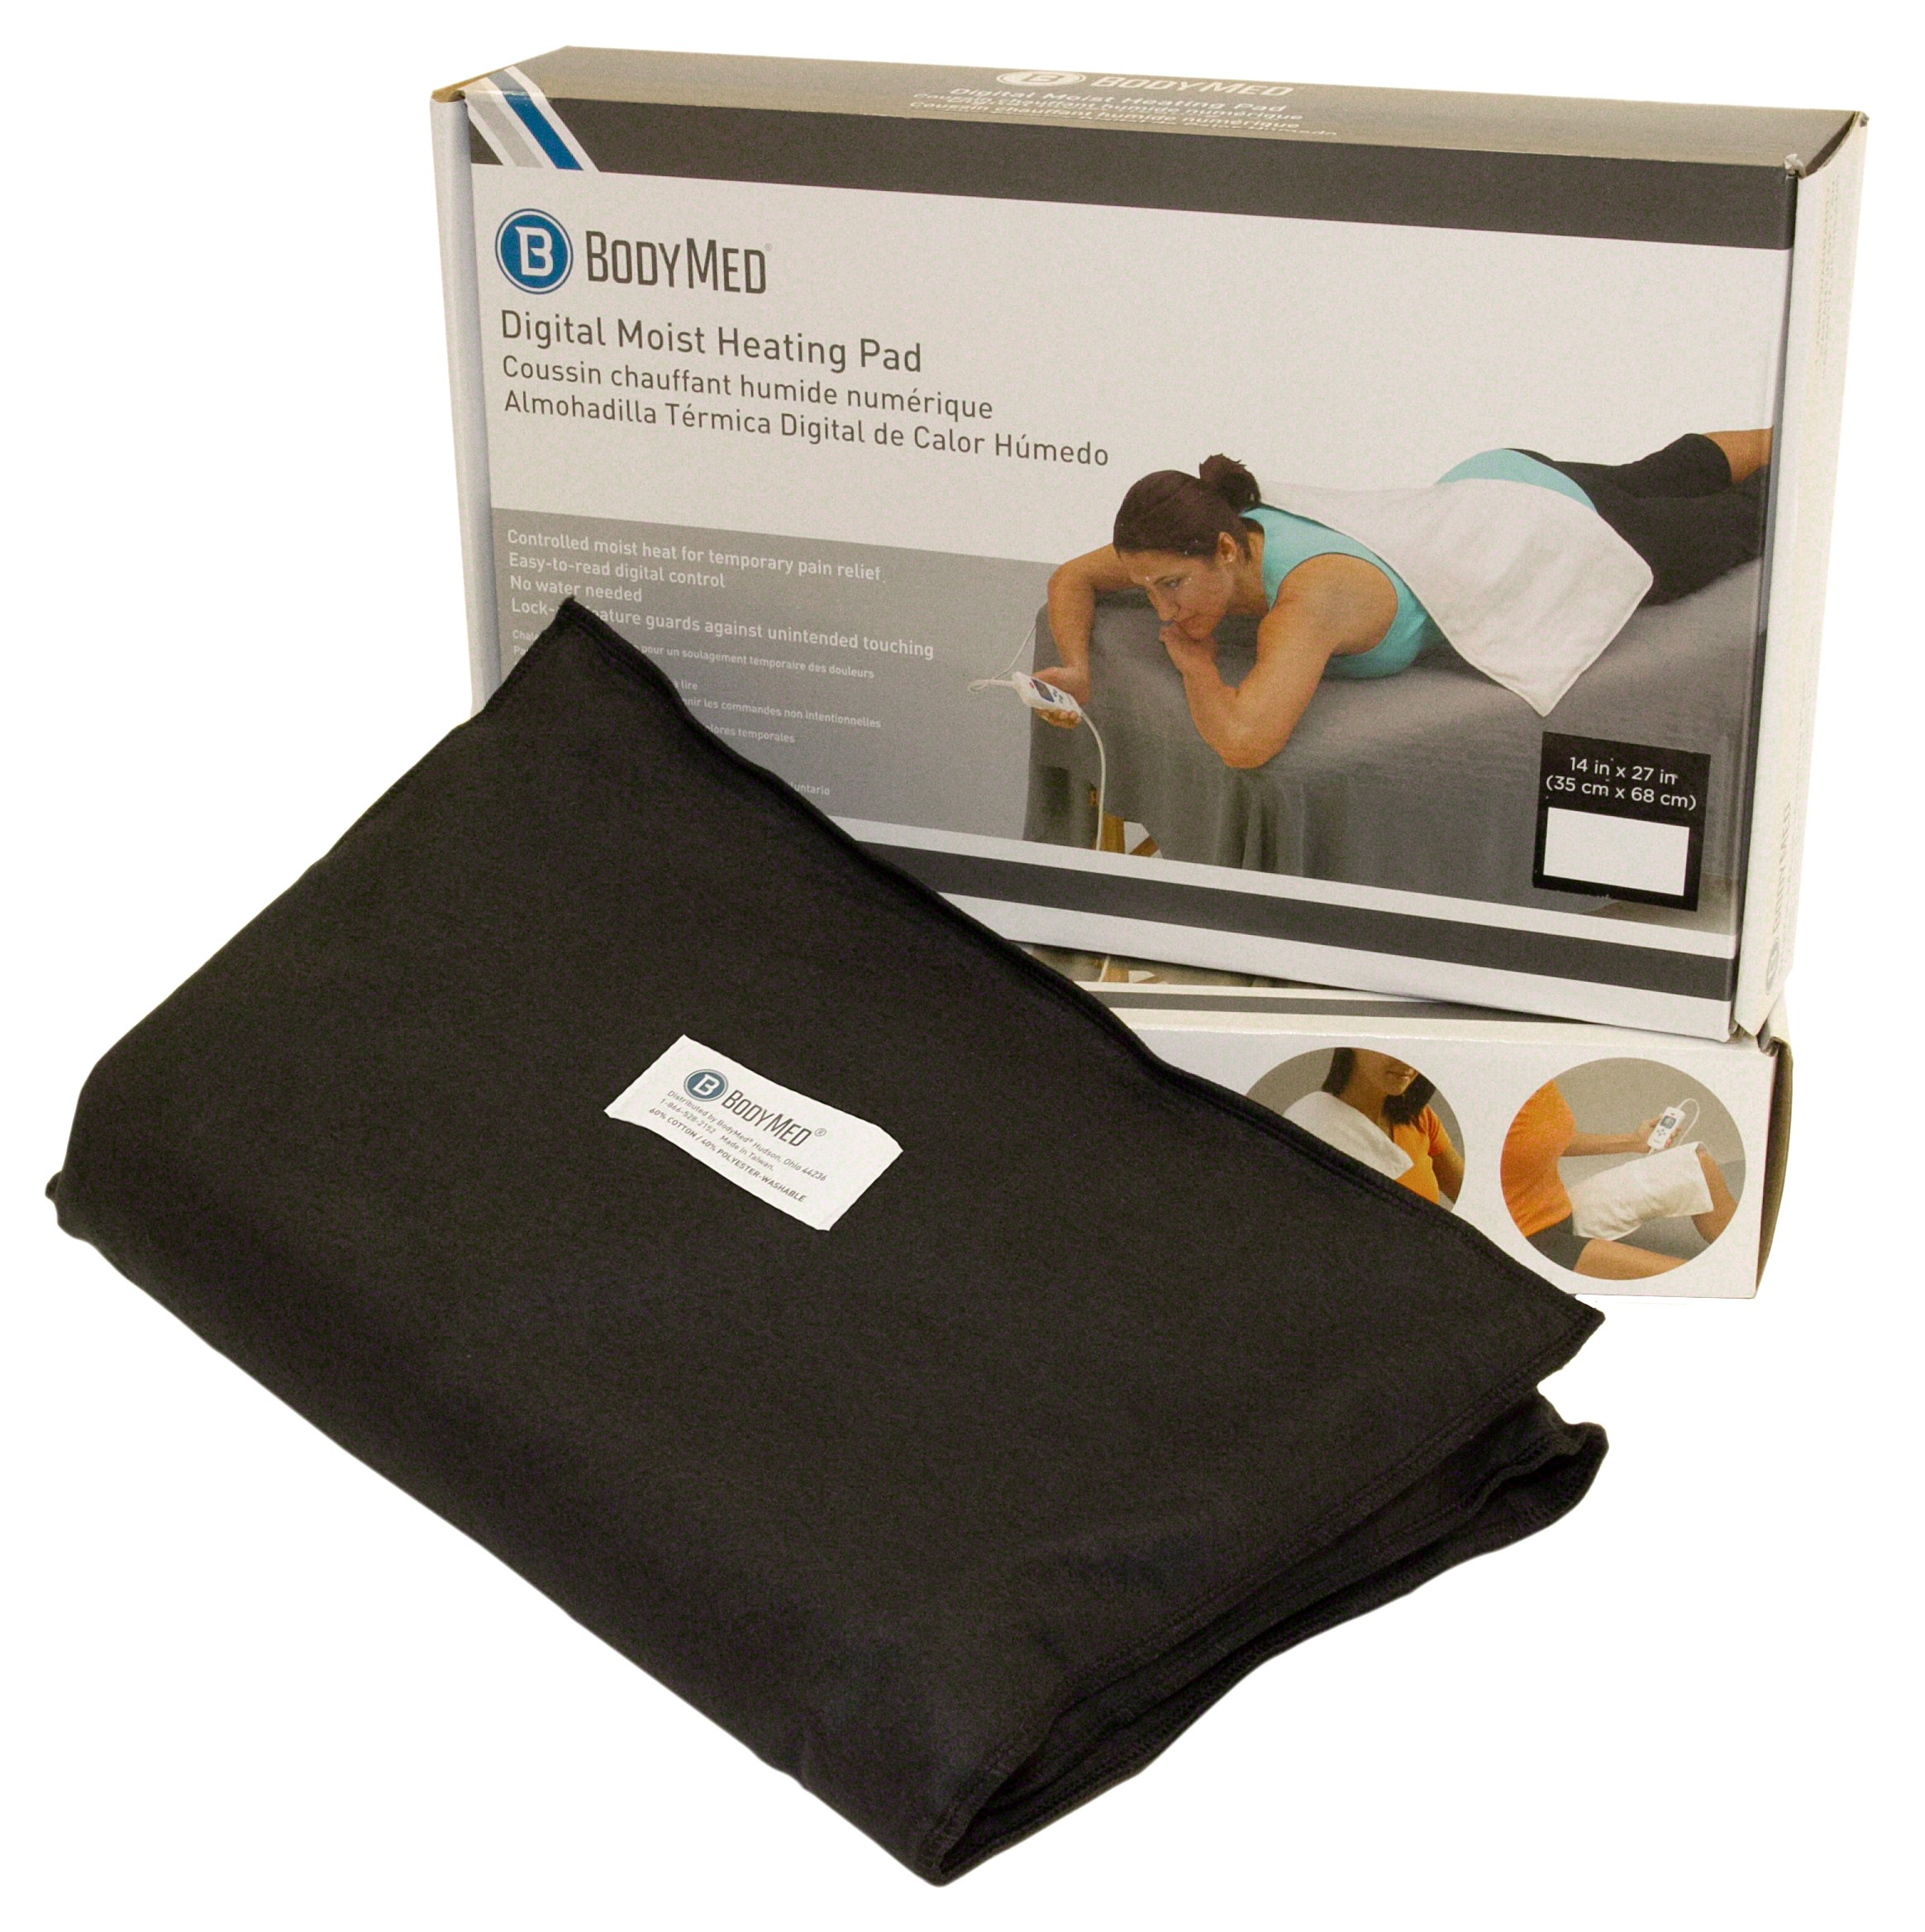 Amazon.com: BodyMed Black Digital Electric Moist Heating Pad Delivers Therapeutic Warmth at Source of Pain 14 inch x 27 inch - Black: Health & Personal Care